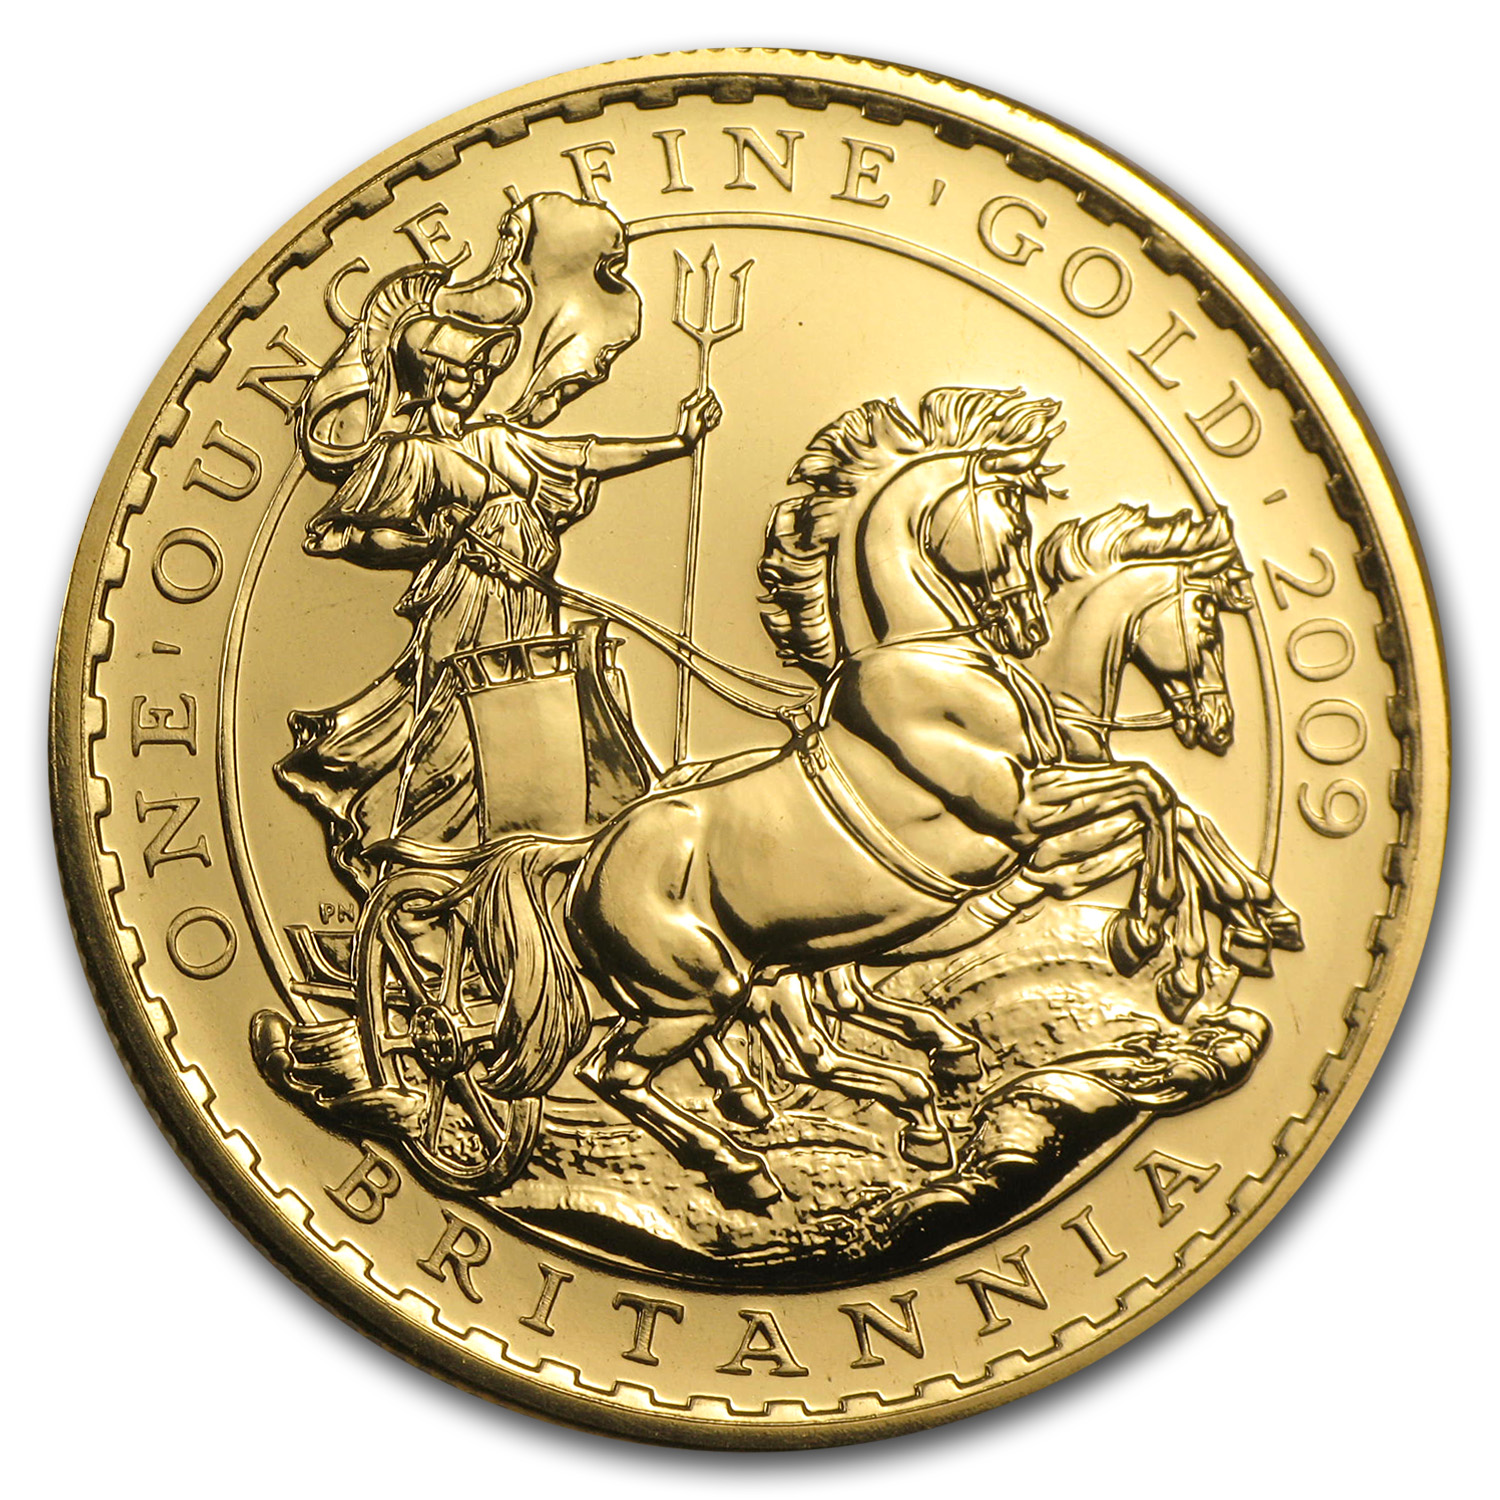 2009 1 oz Gold Britannia - Brilliant Uncirculated